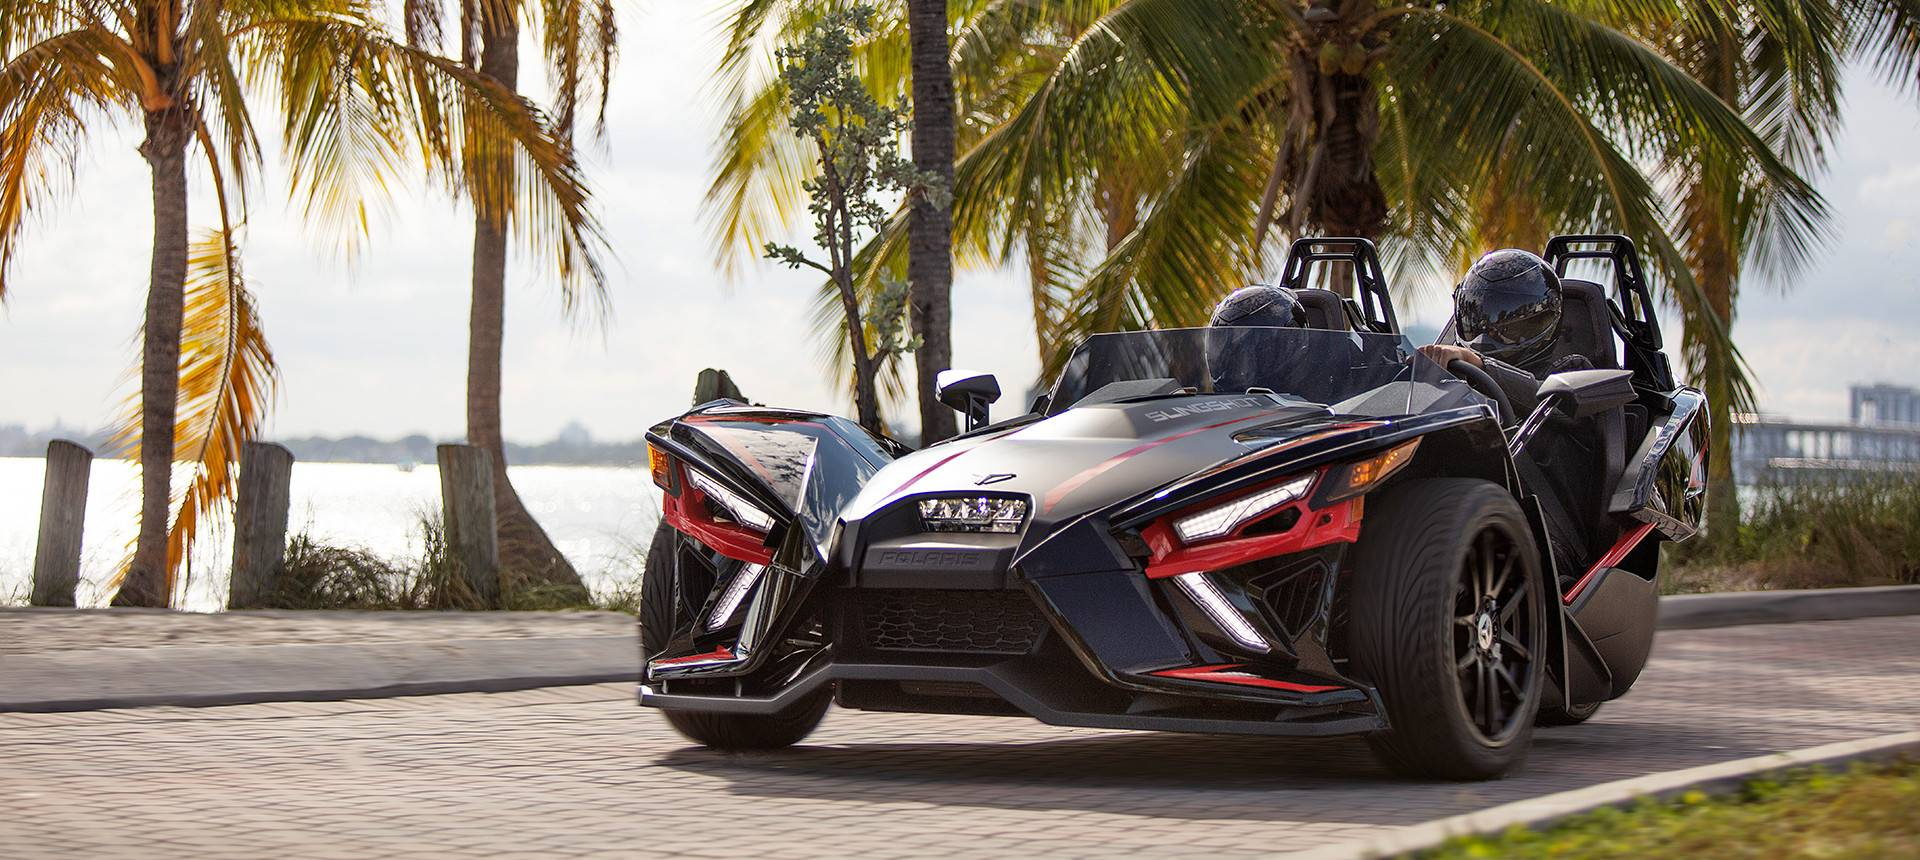 2020 Polaris SLINGSHOT R in Panama City Beach, Florida - Photo 15